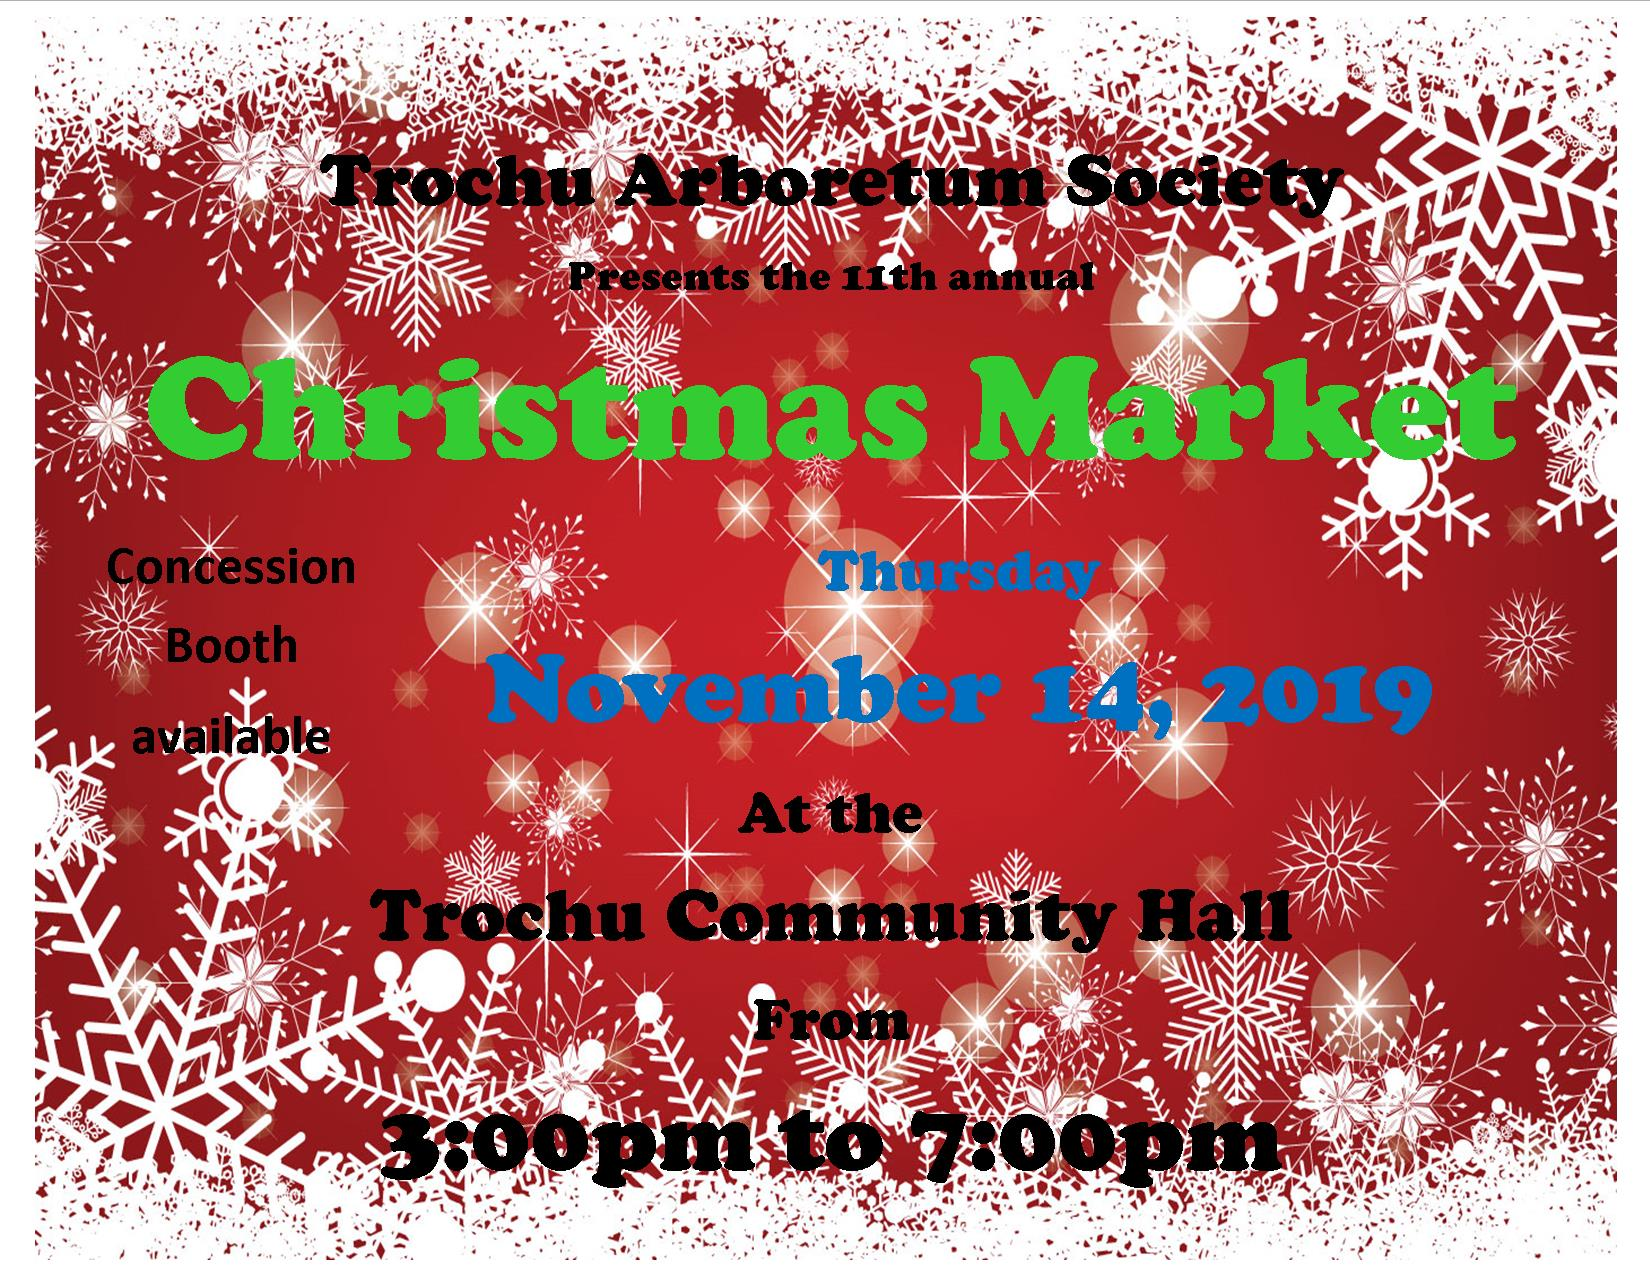 Trochu Arboretum Annual Christmas Market @ Trochu & District Community Centre